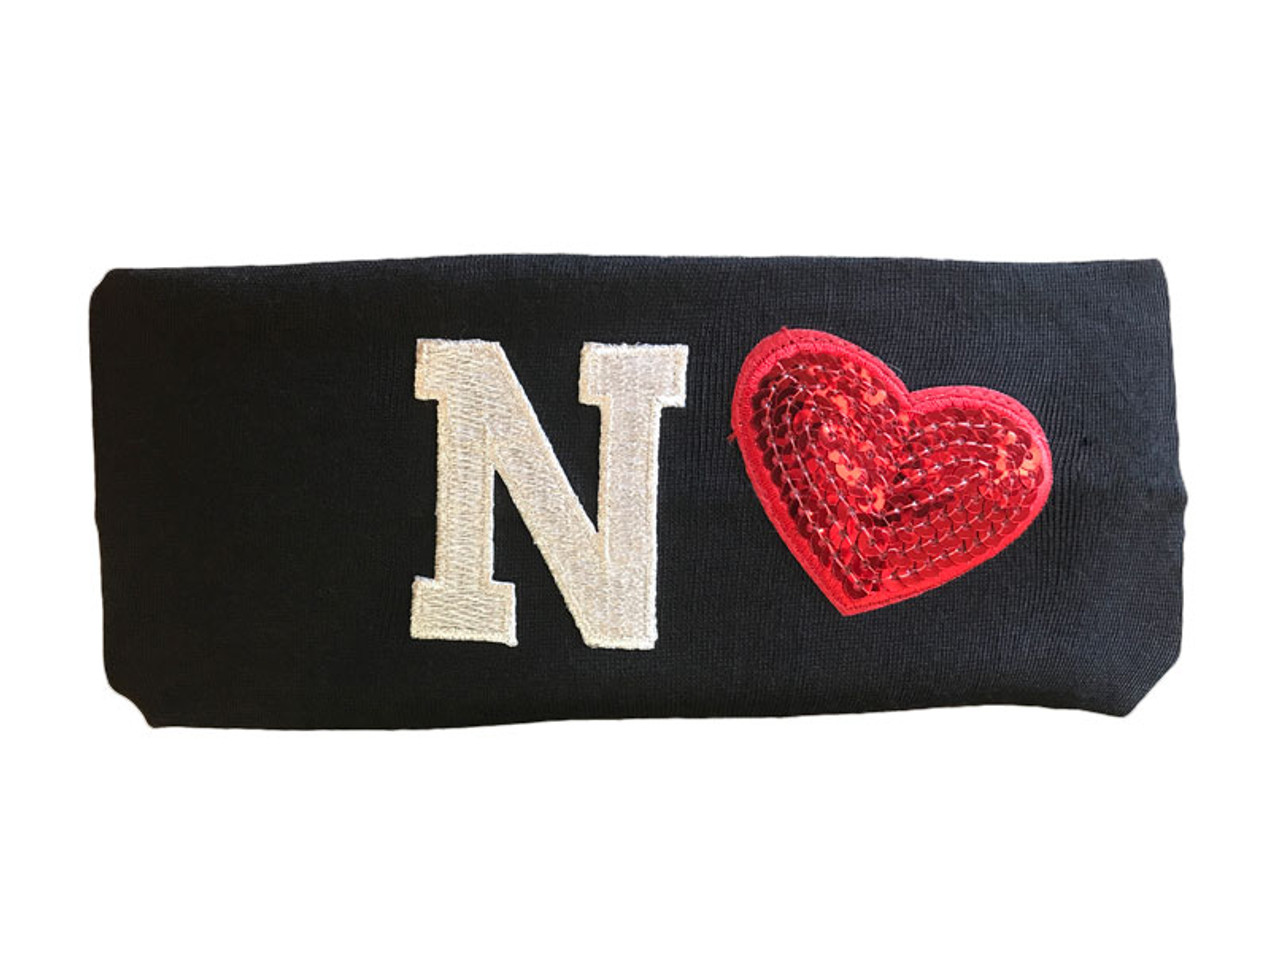 Kids Personalized Sweatband (2 Patches)